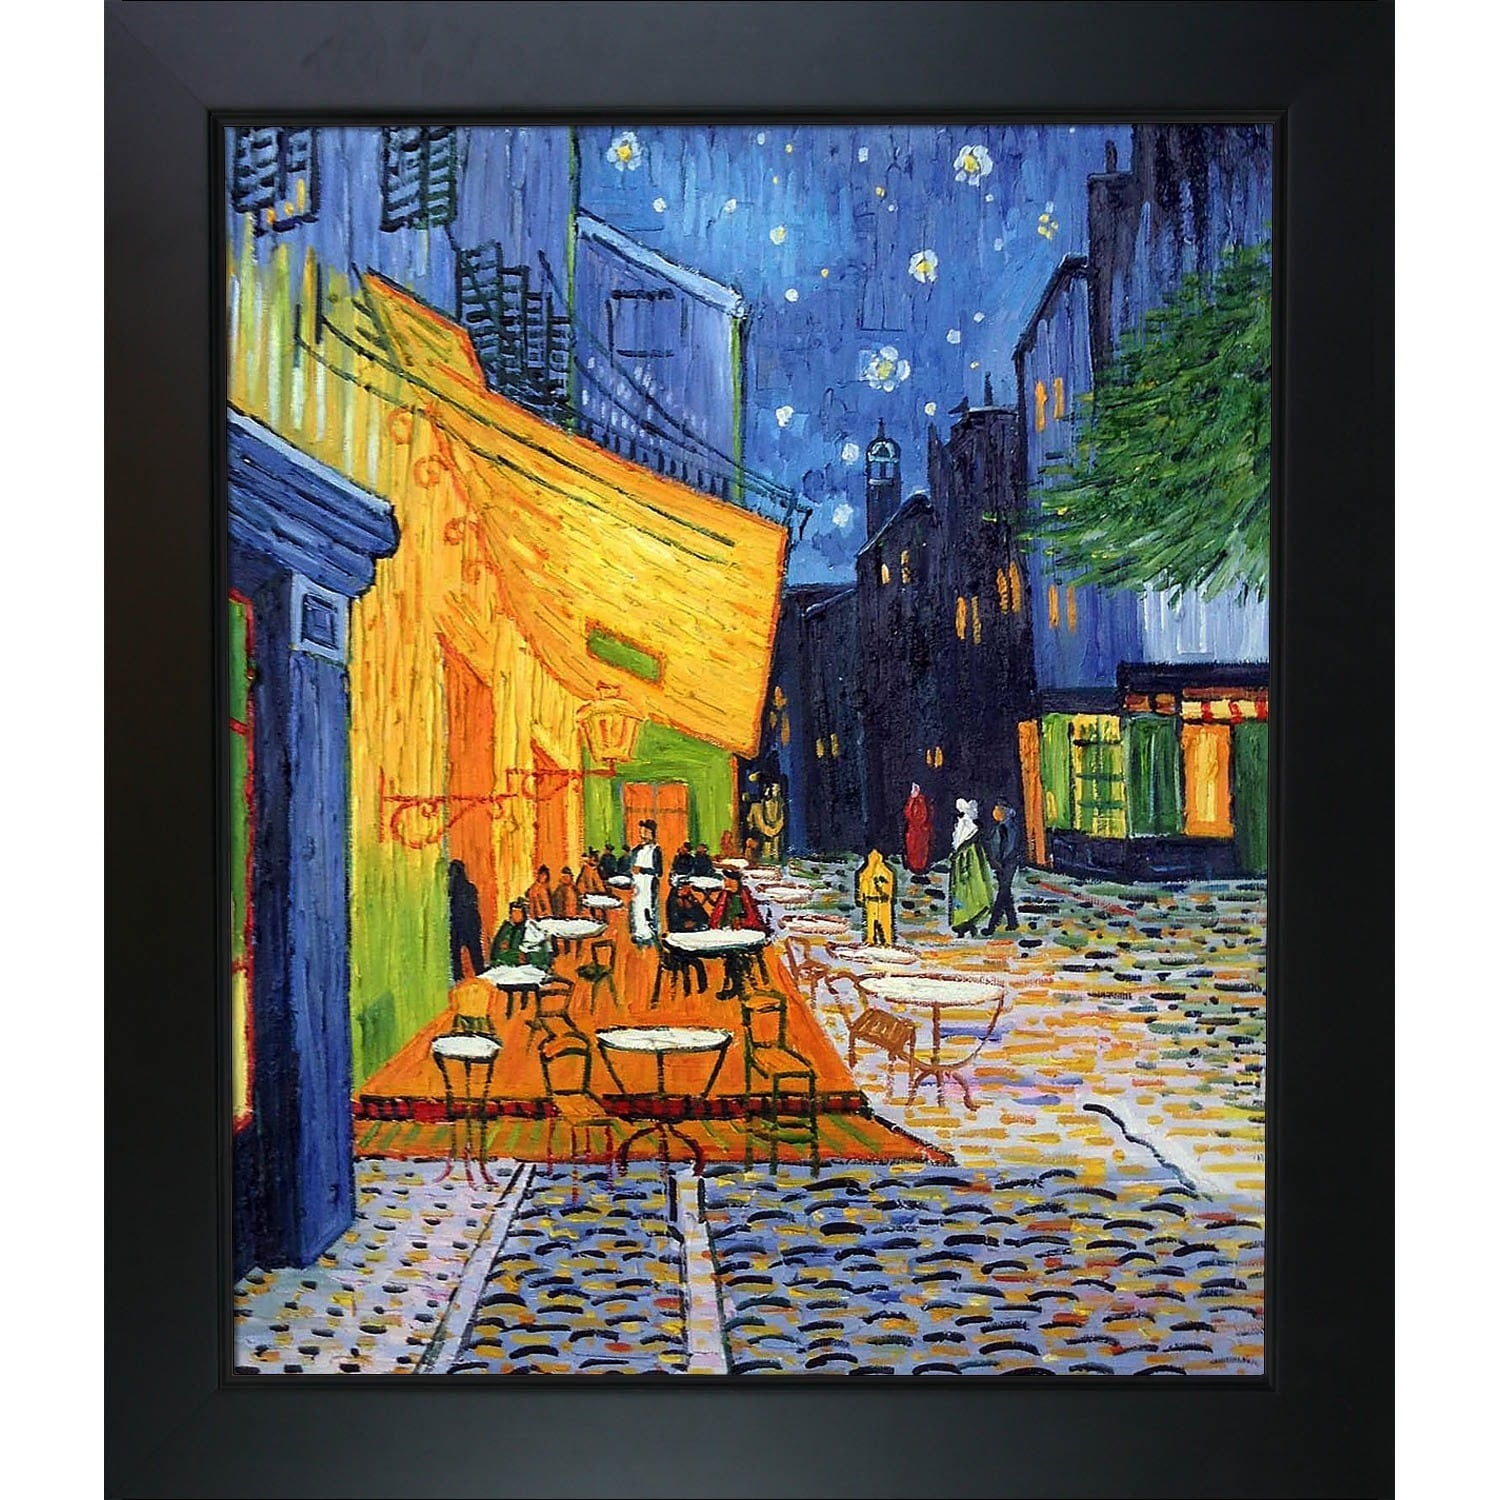 Fabulous Van Gogh 'Cafe Terrace at Night' Framed Art - Free Shipping Today  HQ45